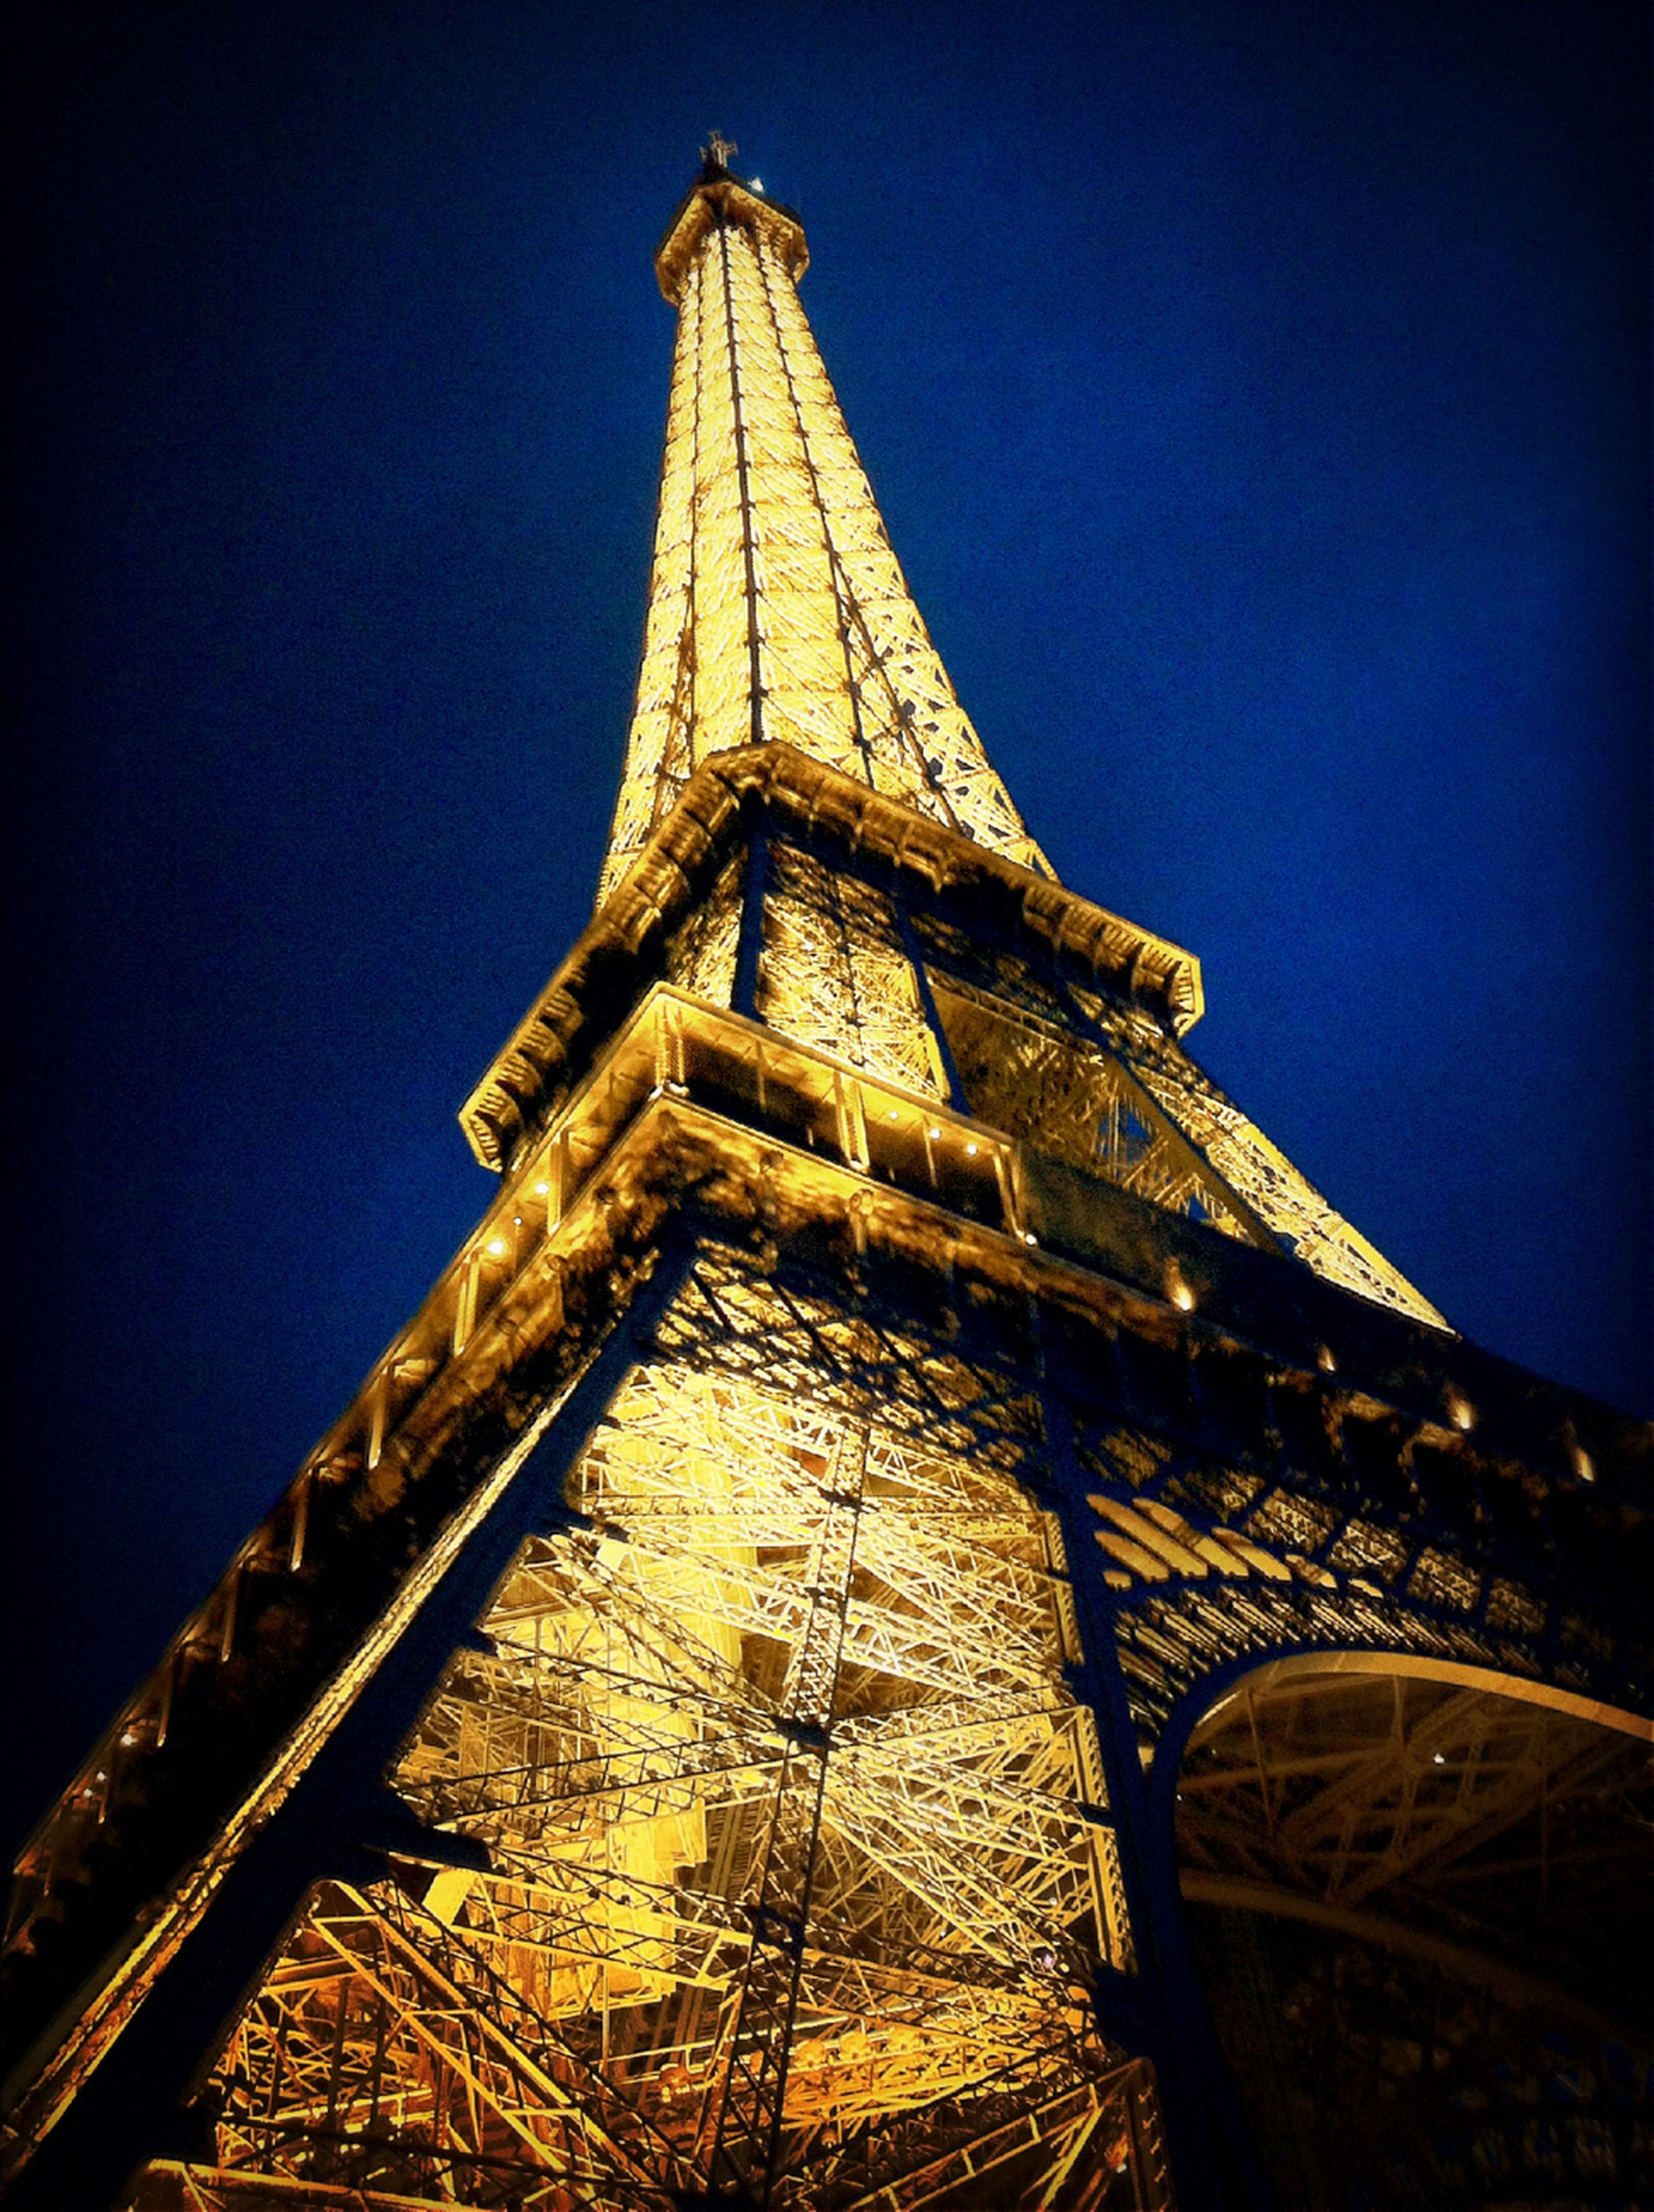 low angle view, architecture, built structure, tower, clear sky, famous place, building exterior, blue, travel destinations, tall - high, international landmark, eiffel tower, travel, tourism, capital cities, sky, culture, illuminated, night, clock tower